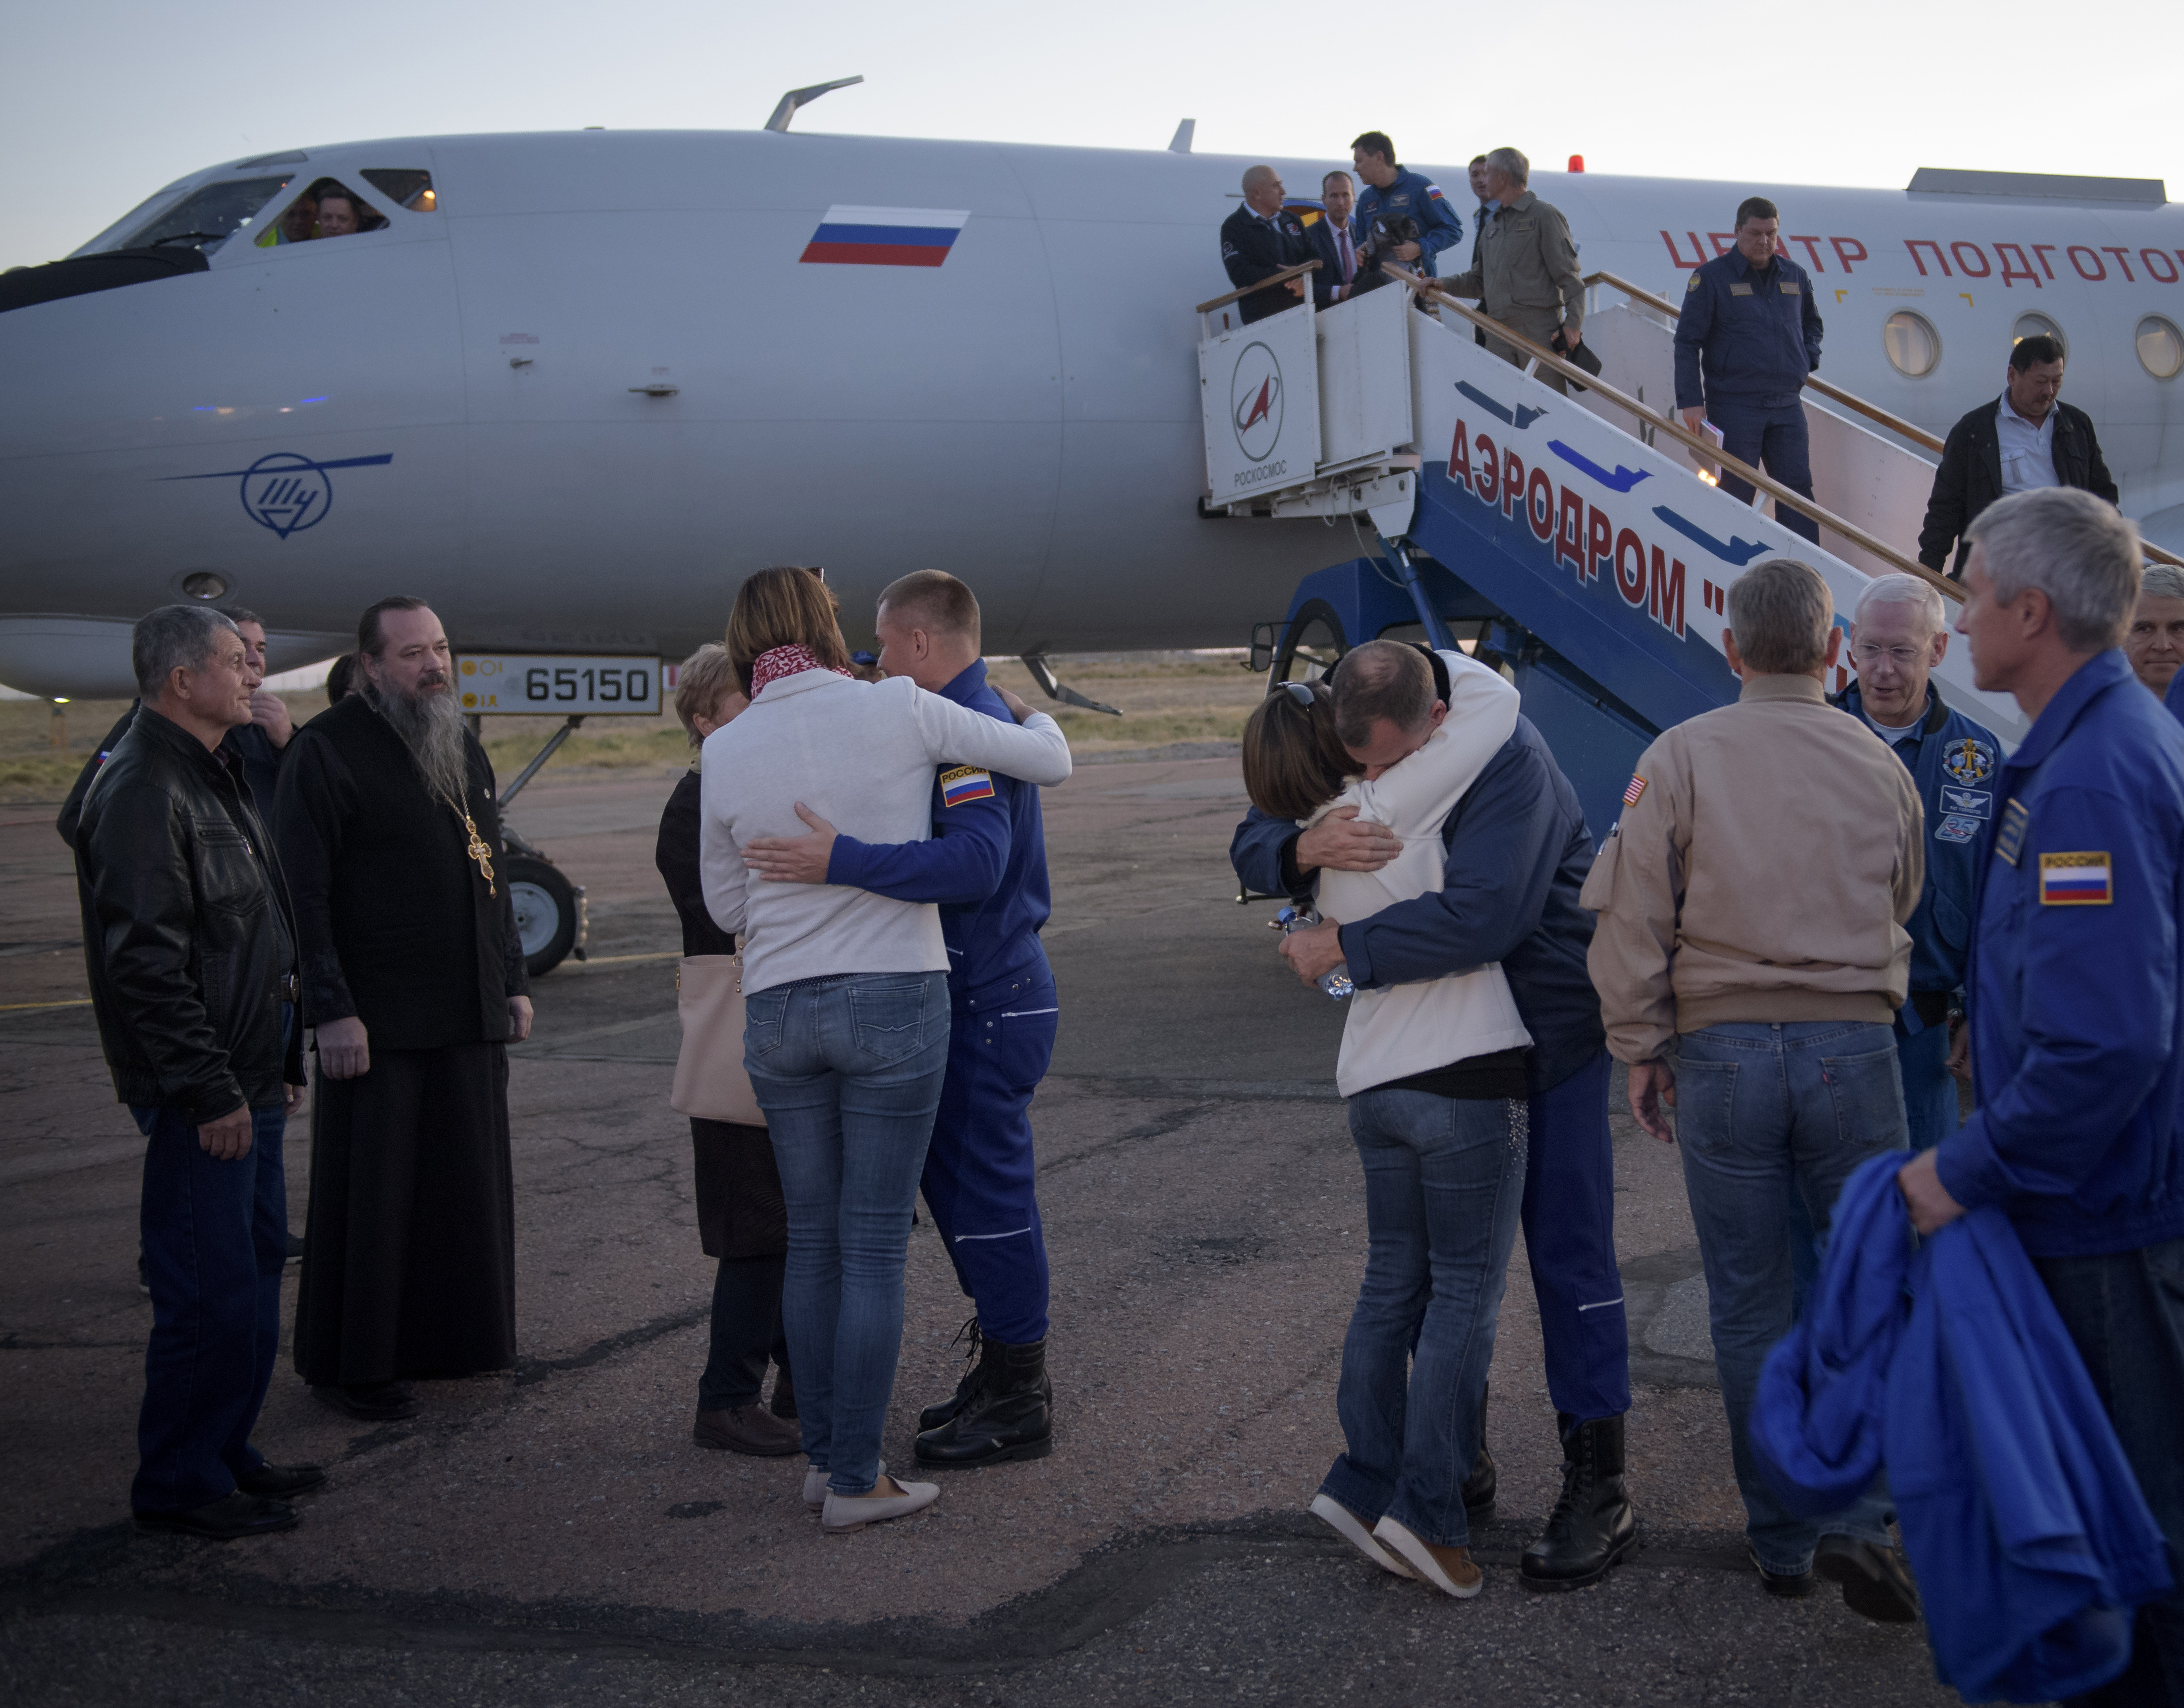 Expedition 57 Flight Engineer Alexey Ovchinin of Roscosmos, left, and Flight Engineer Nick Hague of NASA, right. embrace their families after landing at the Krayniy Airport, Thursday, Oct. 11, 2018 in Baikonur, Kazakhstan.